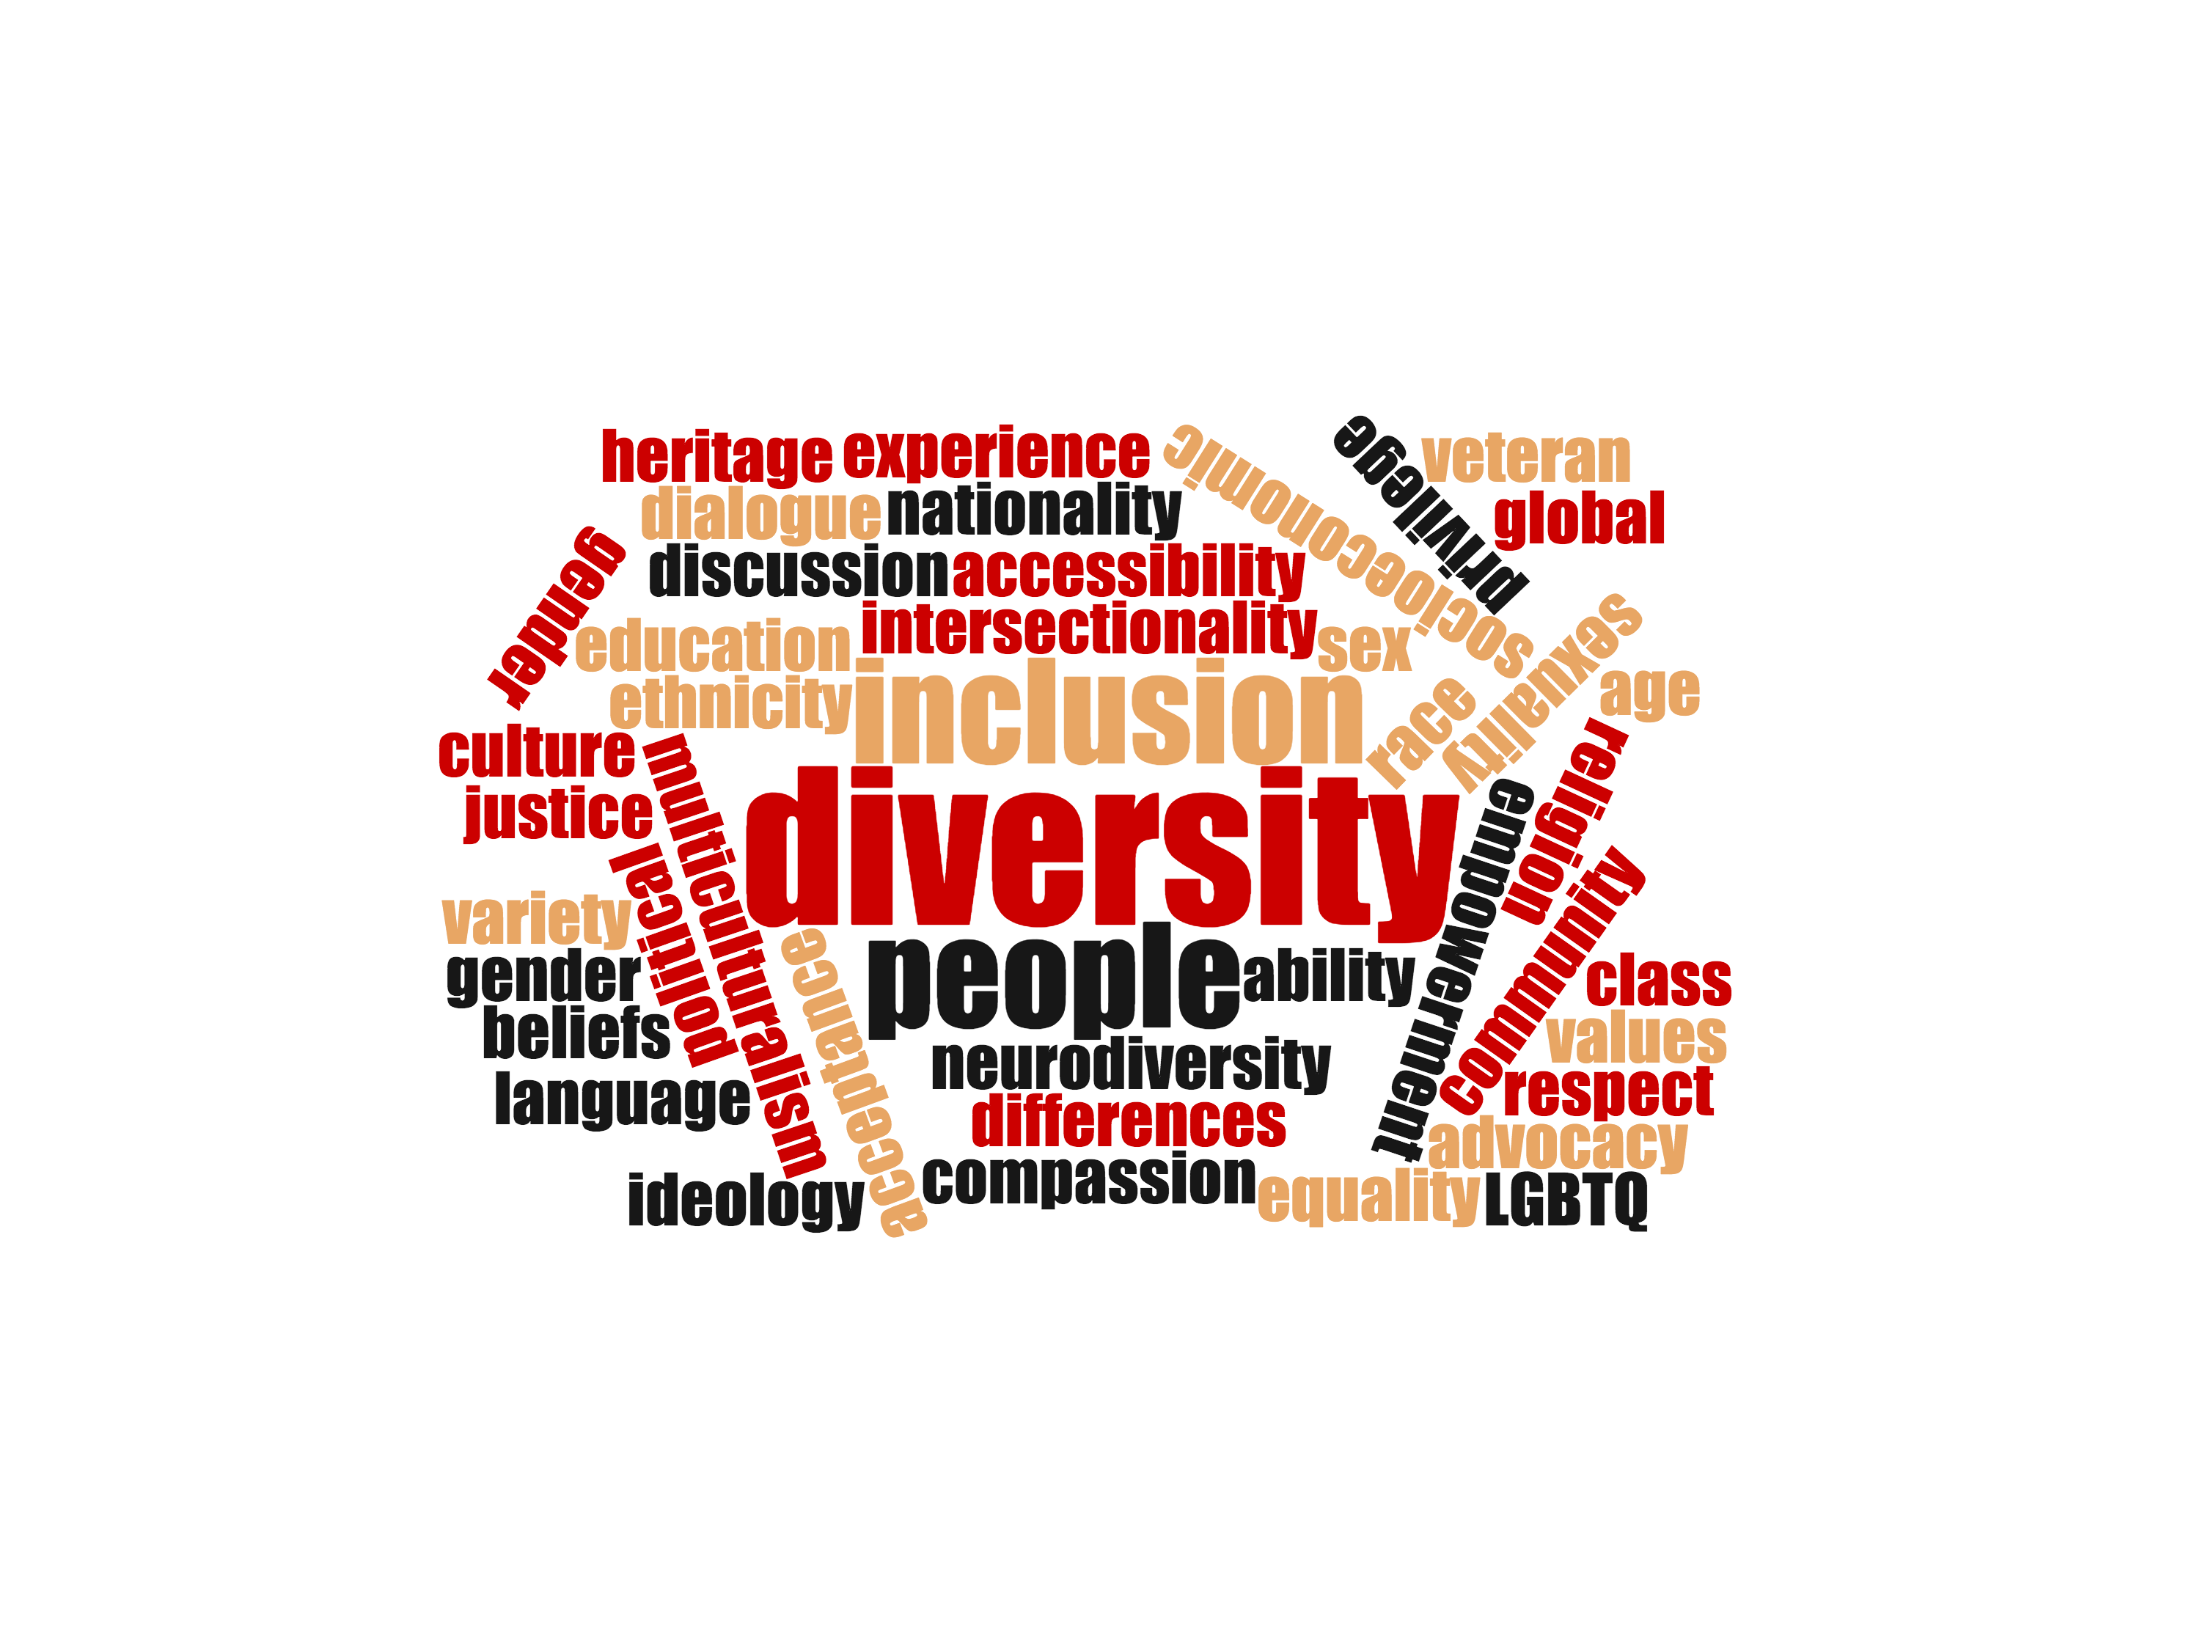 multicultural development psychology Study psych620 multicultural and social issues in psychology from university of phoenix view psych620 course topics and additional information.